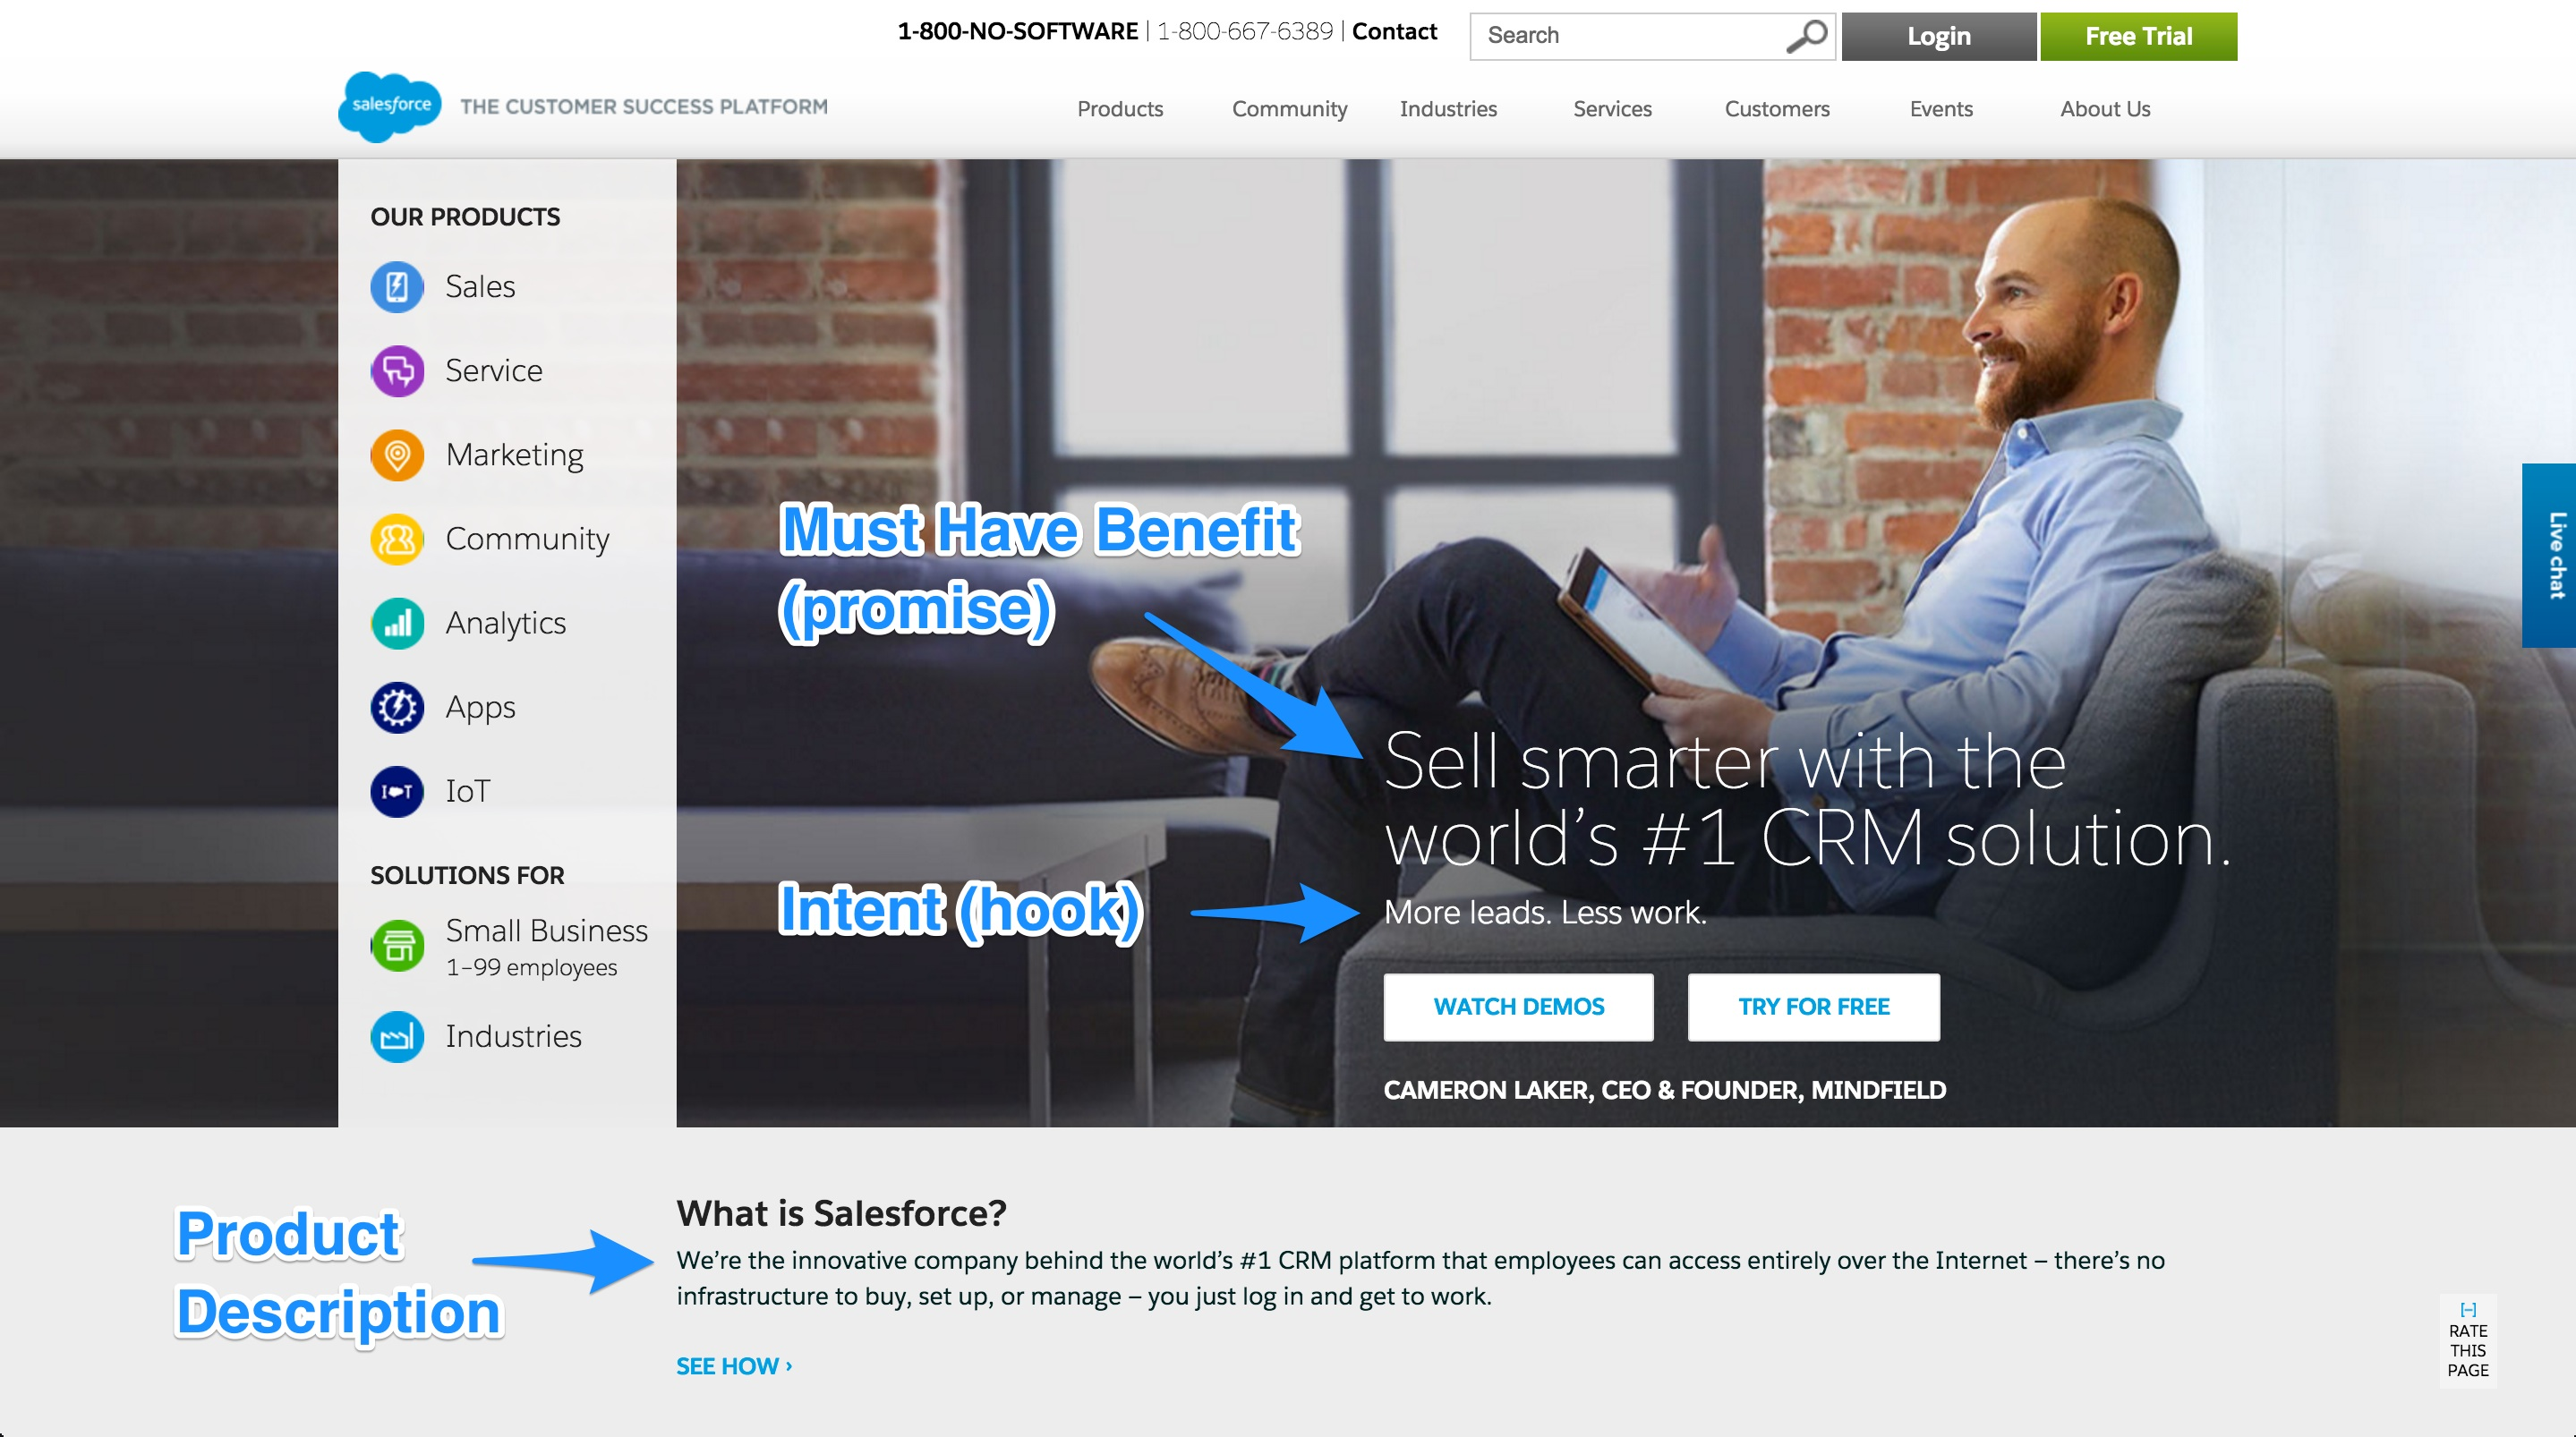 How user insight aligns with Salesforce's homepage